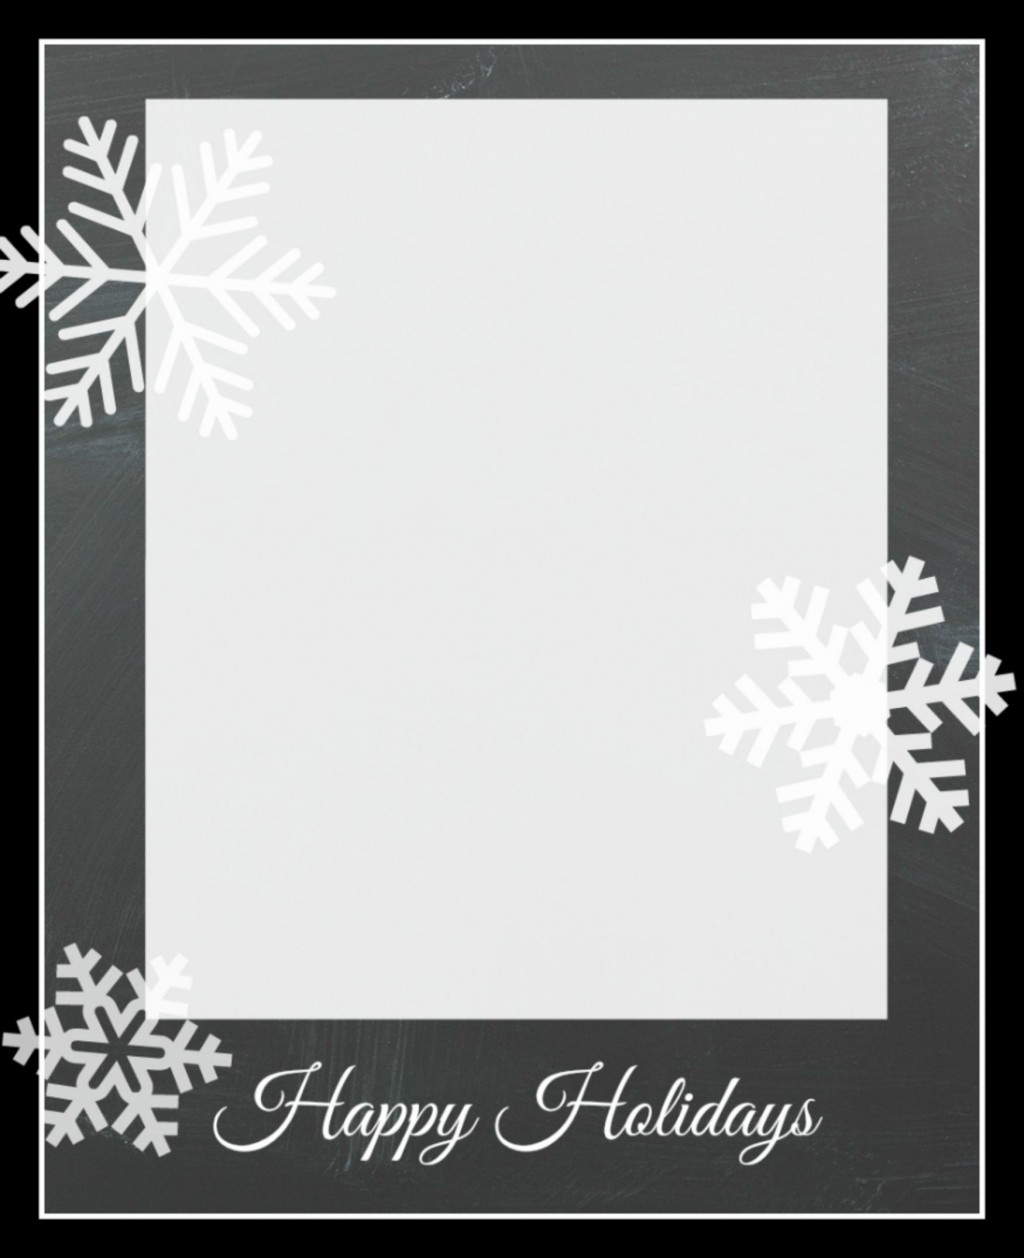 010 Remarkable Free Photo Card Template Idea  Templates Christma Printable Design To PrintLarge